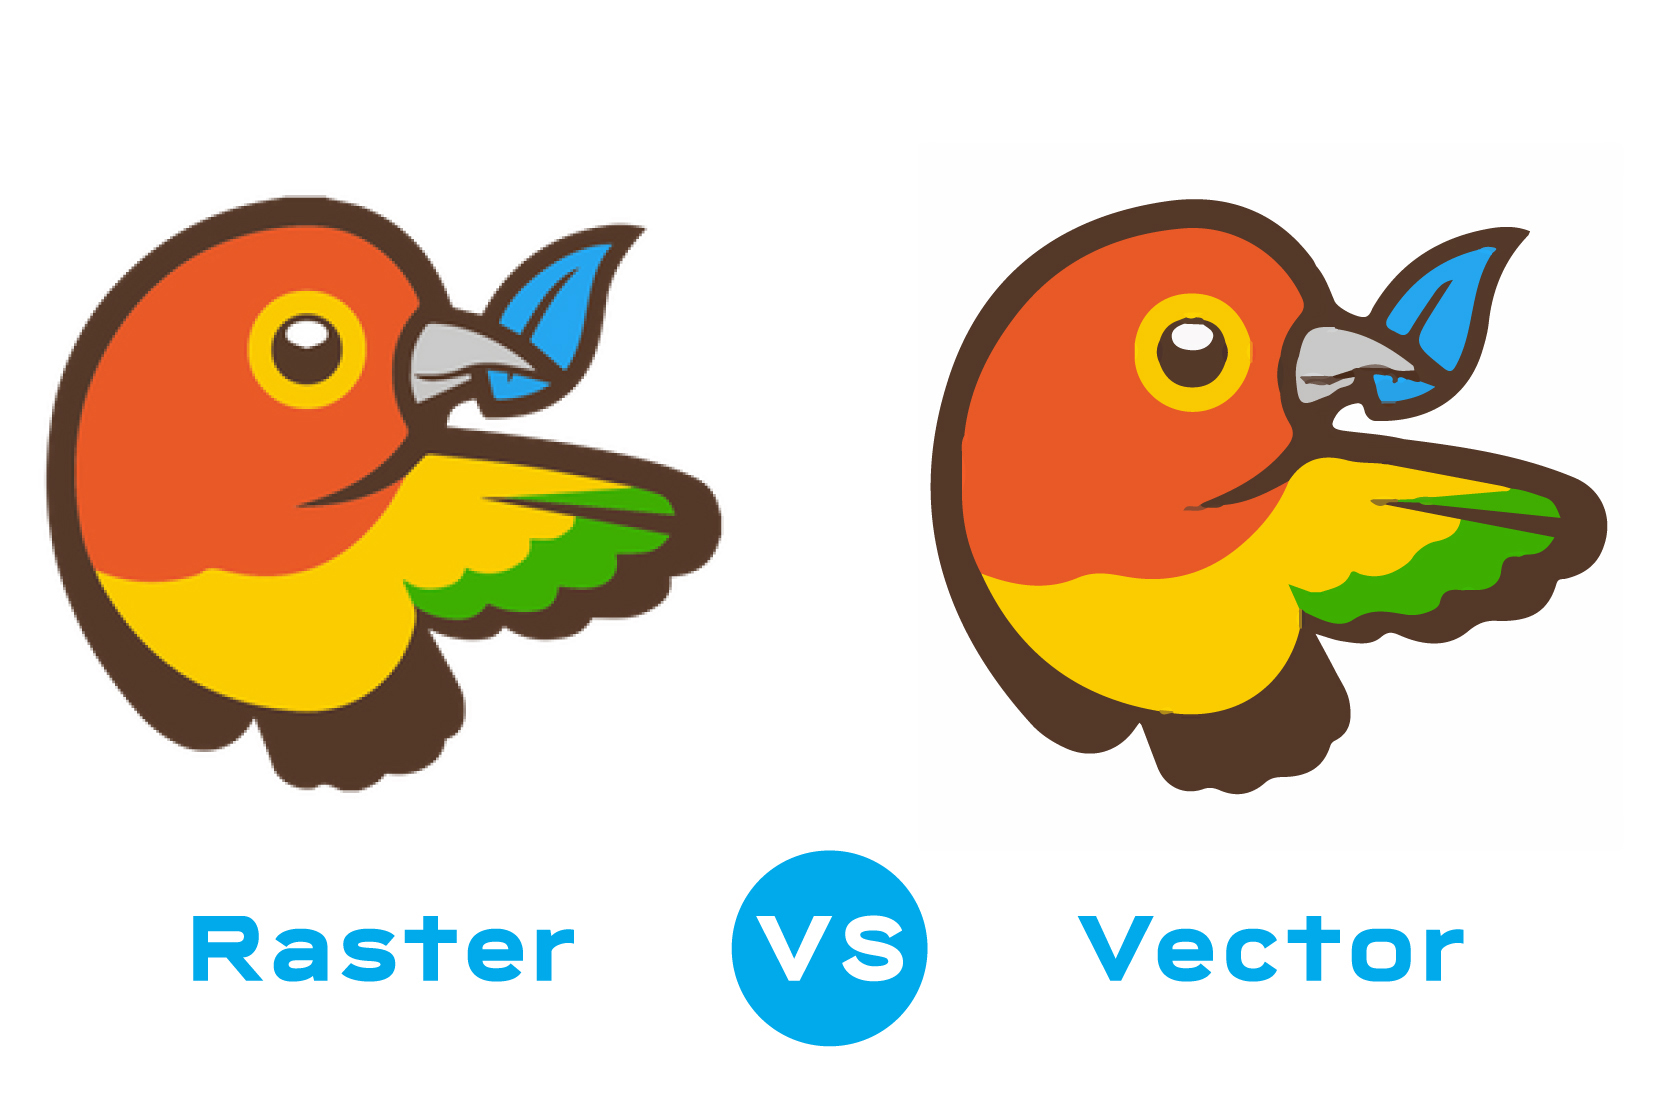 I will convert raster to vector, vector tracing